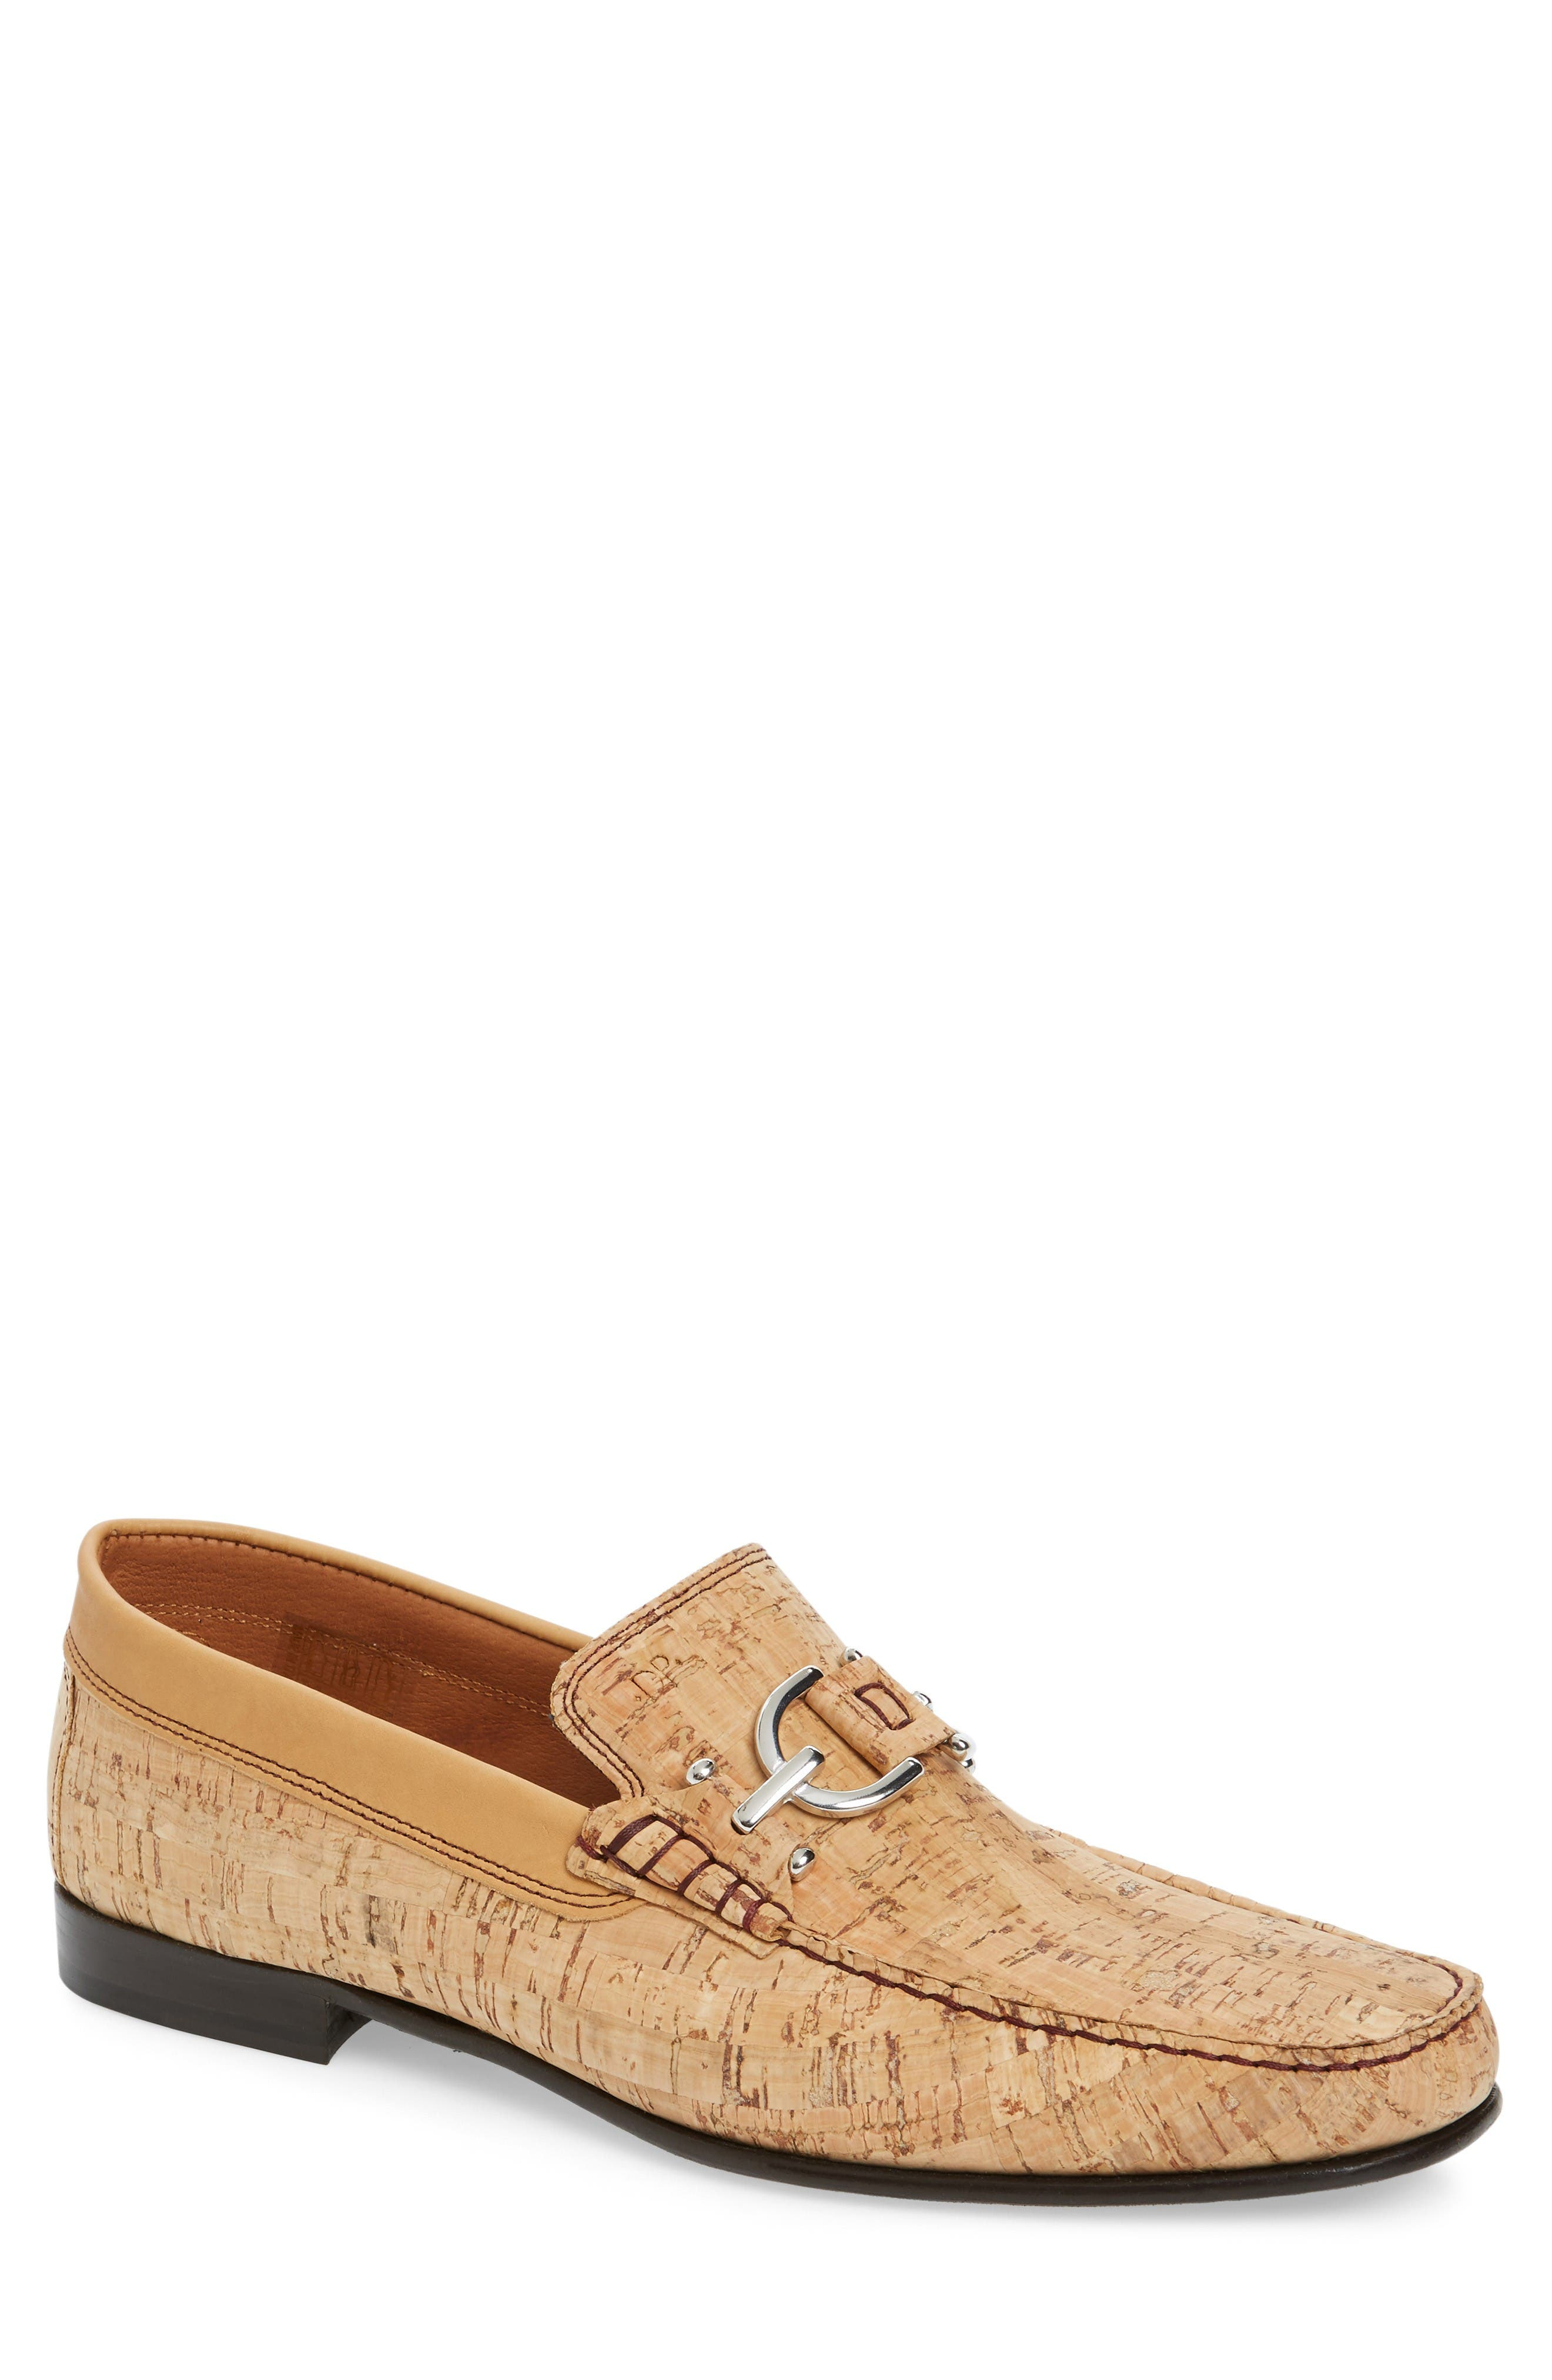 Donald J Pliner 'Dacio' Square-Toe Loafer (Men)